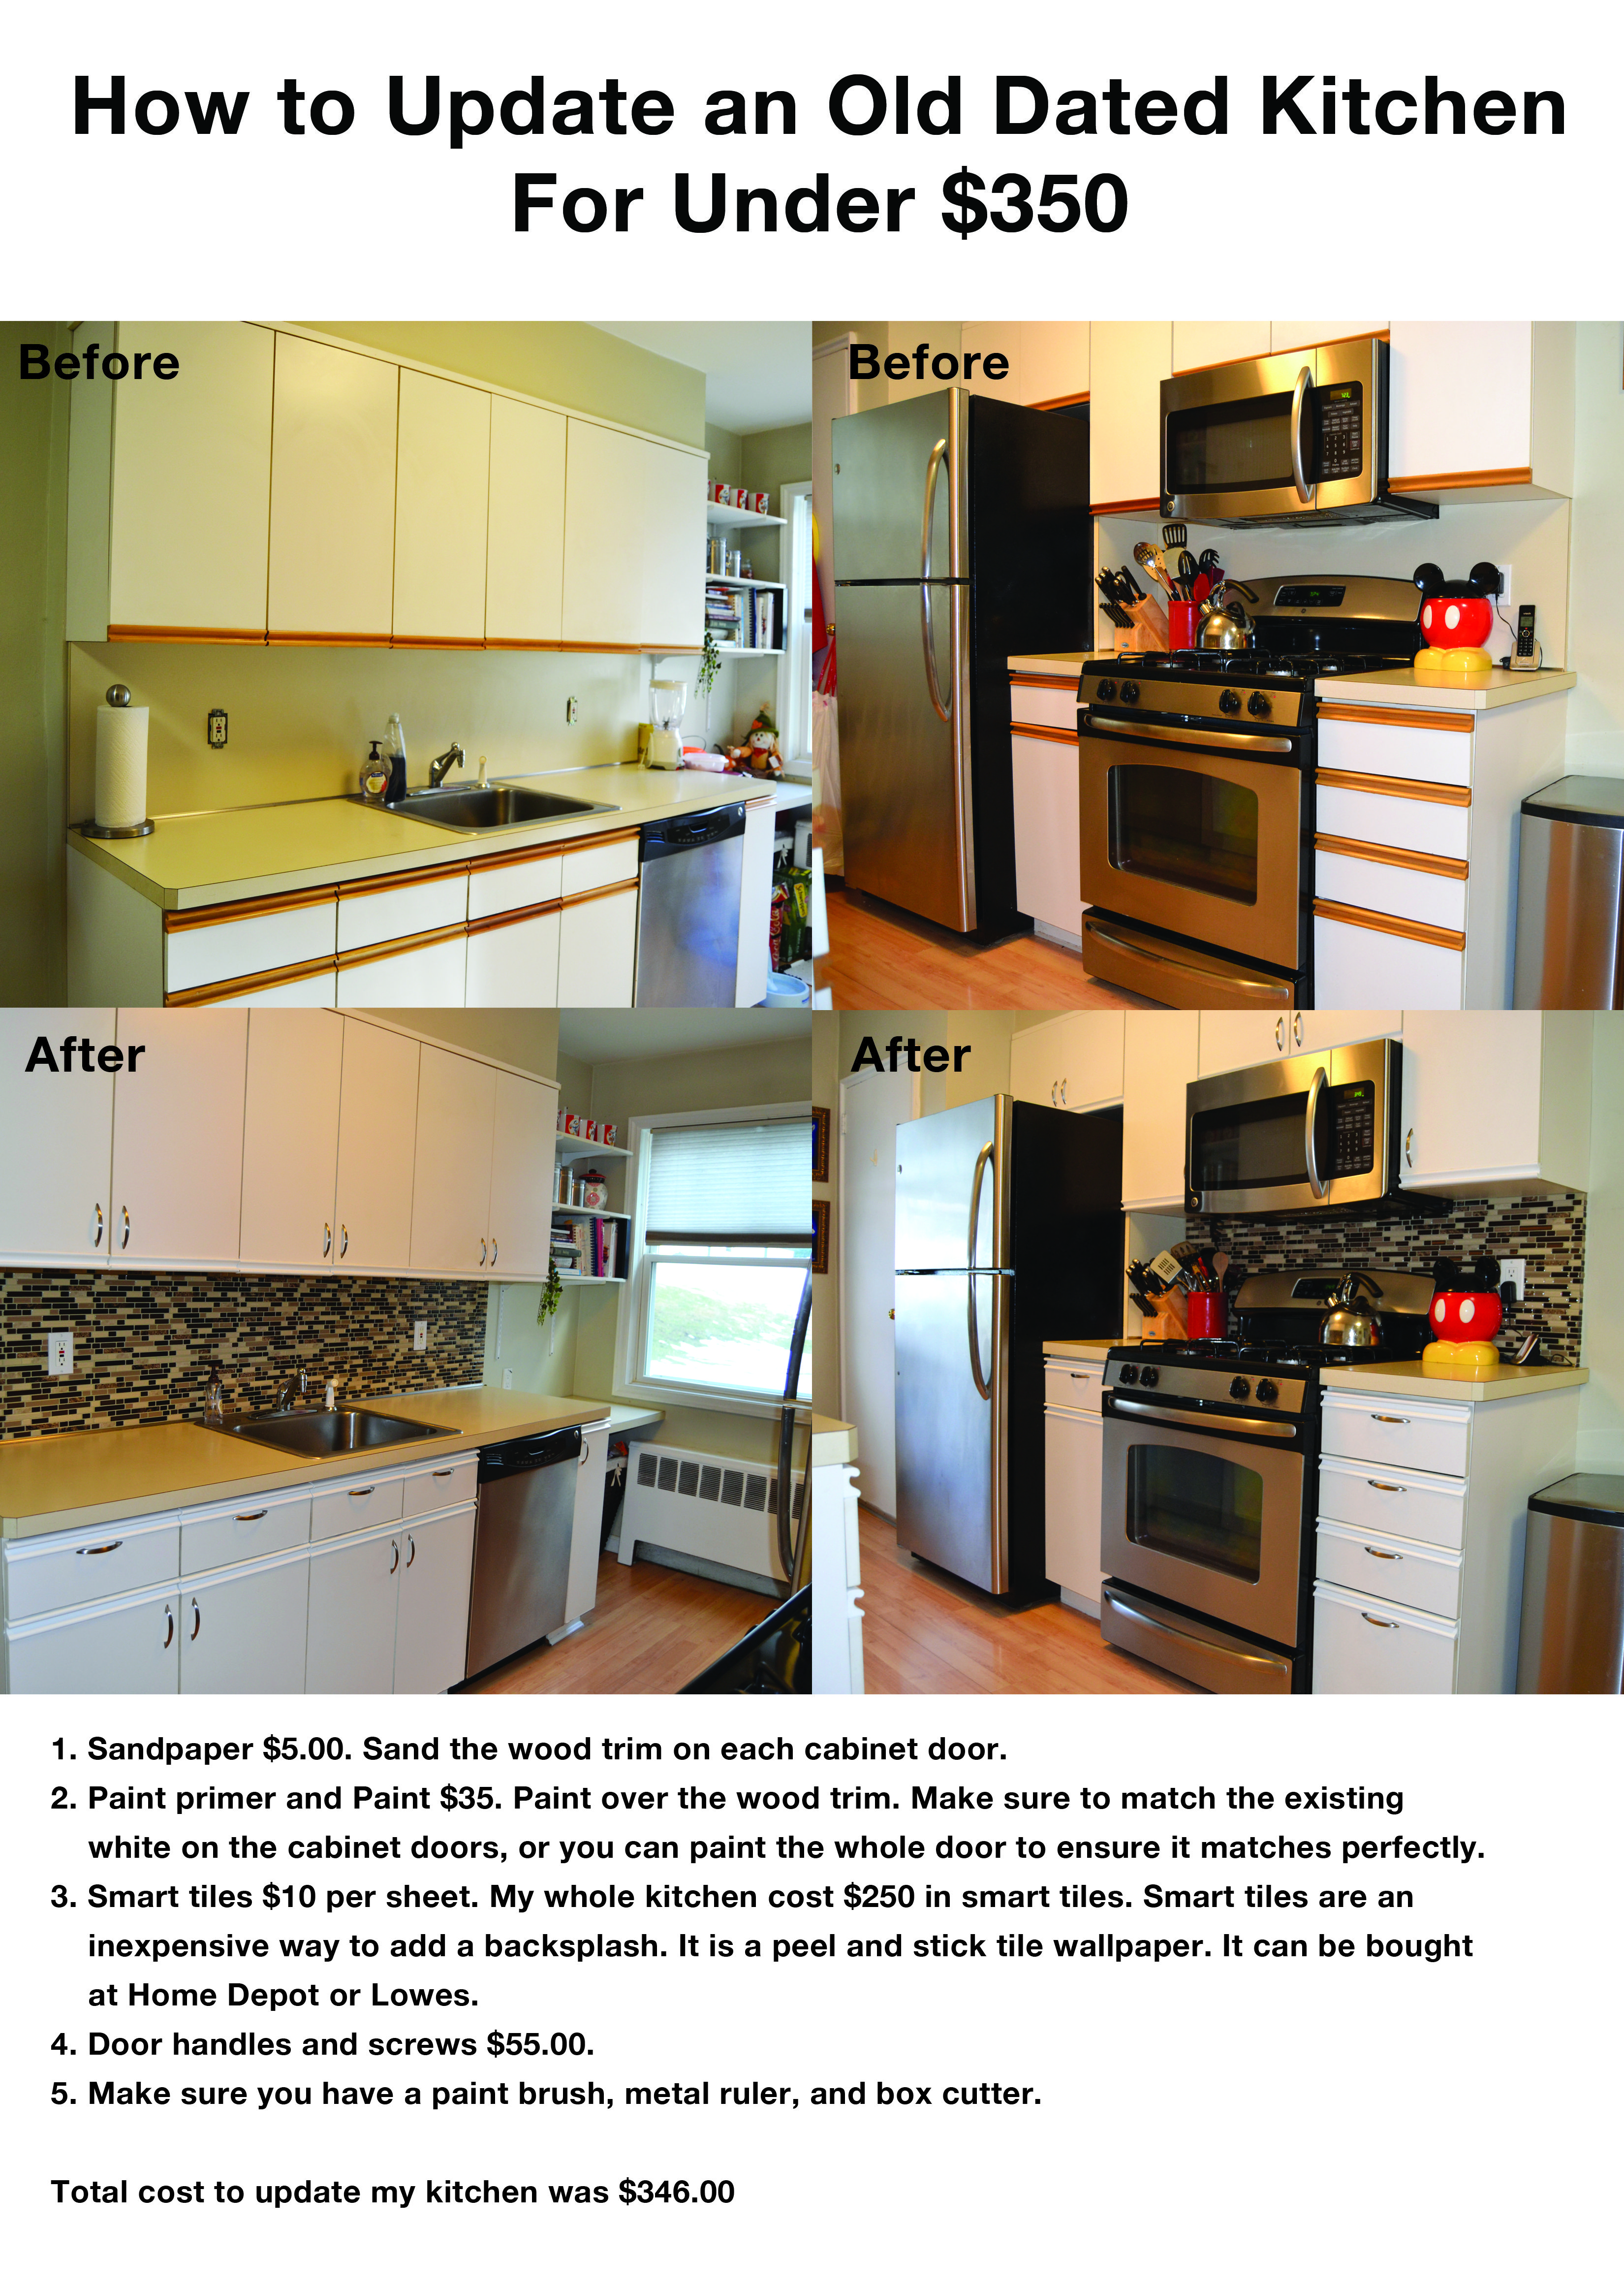 Condo Kitchen Remodel Painting how i updated my old dated 80's kitchen for under $350.00 #kitchen